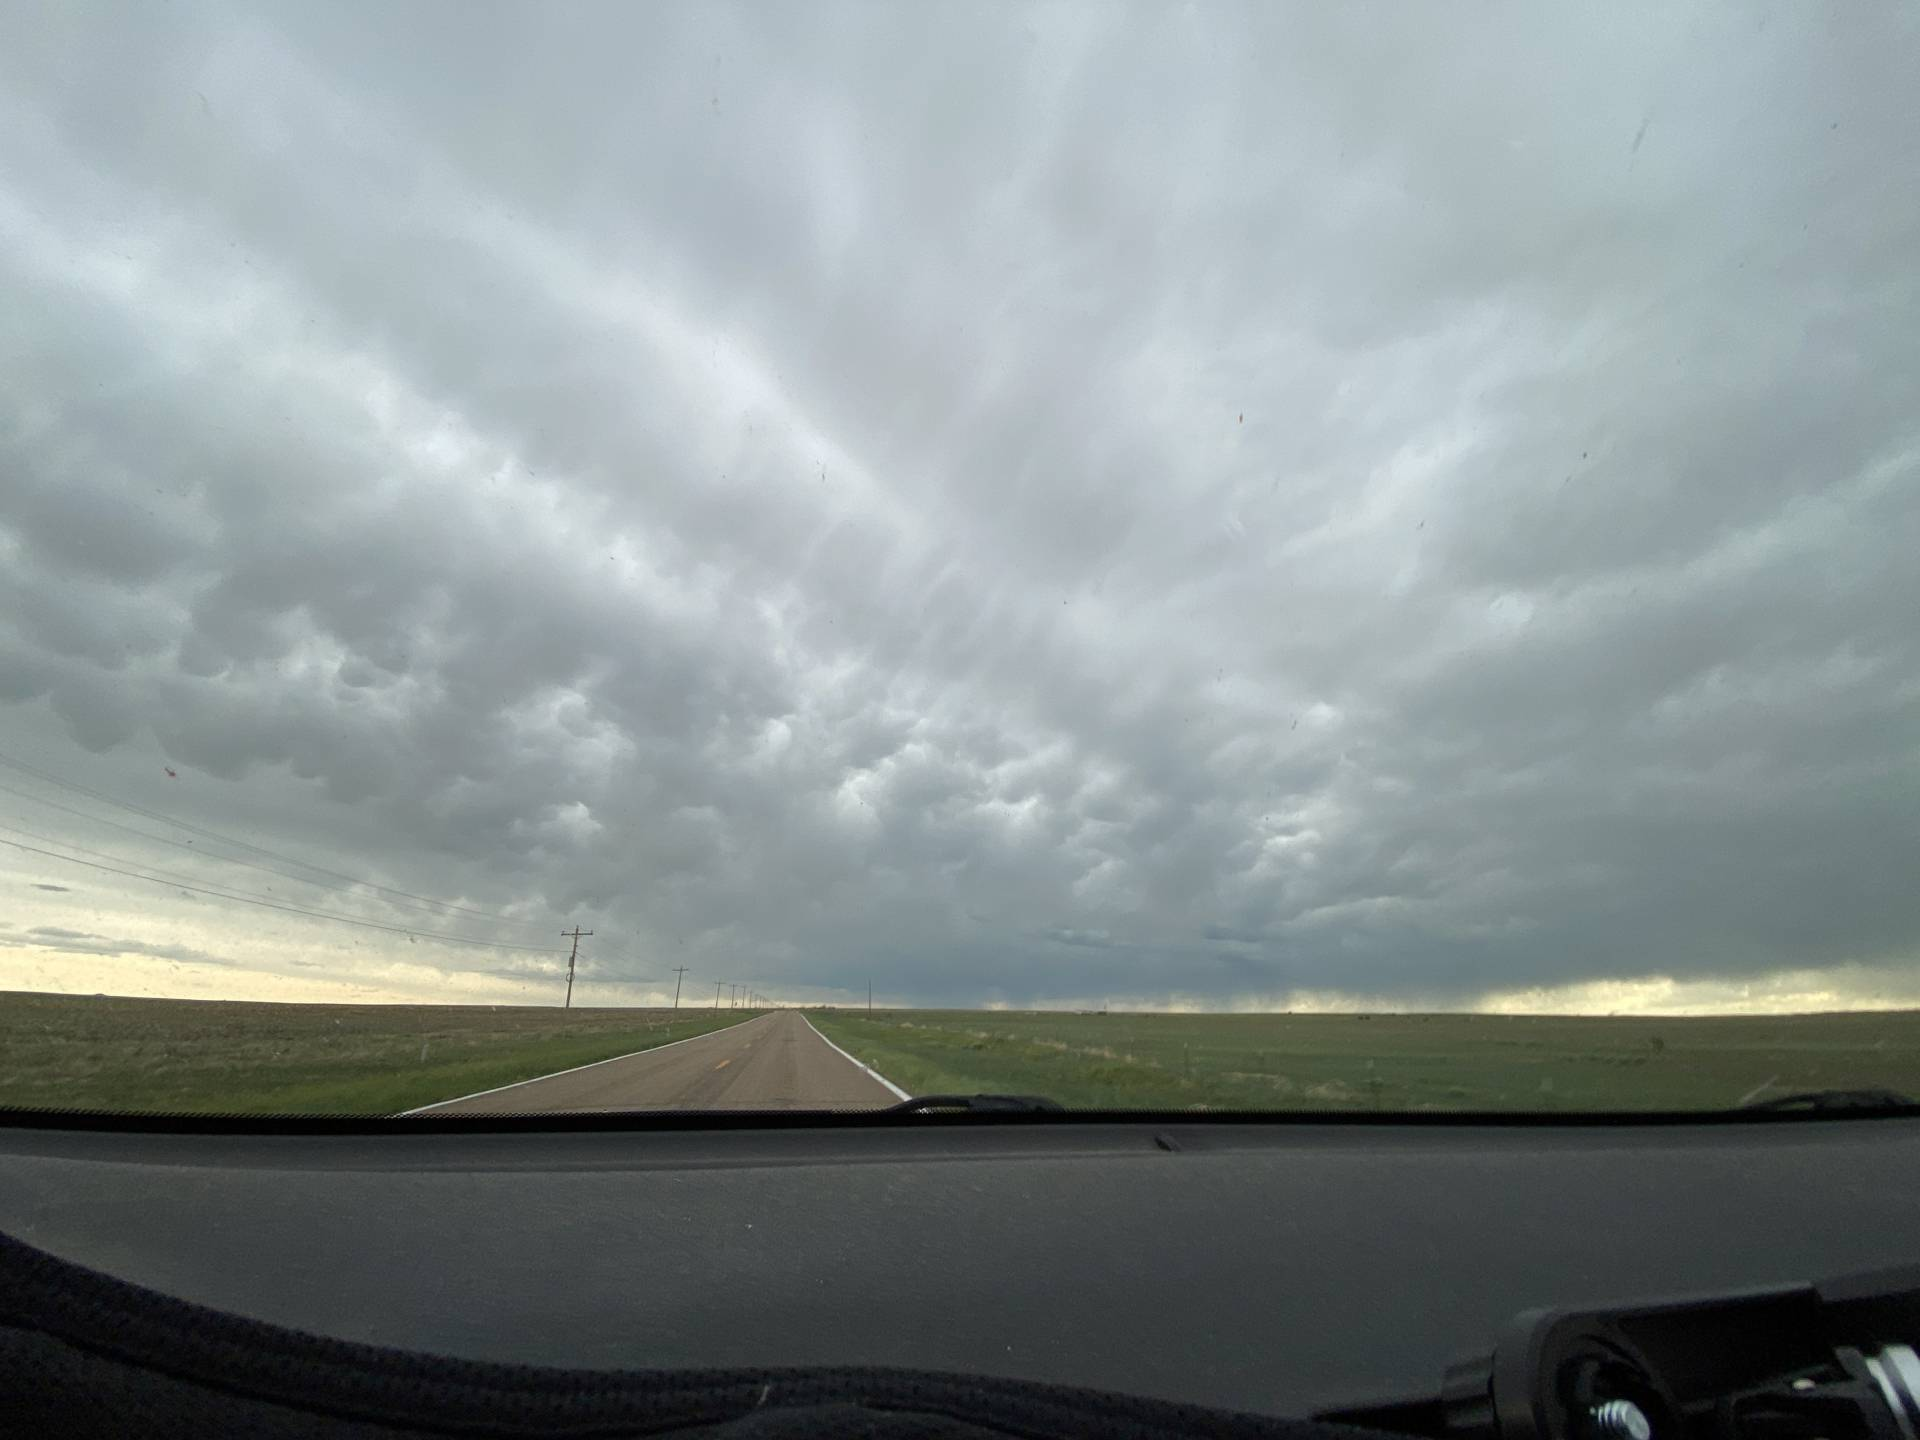 Appoaching a terrain prompted storm gathering strength in Southeast Colorado. #cowx